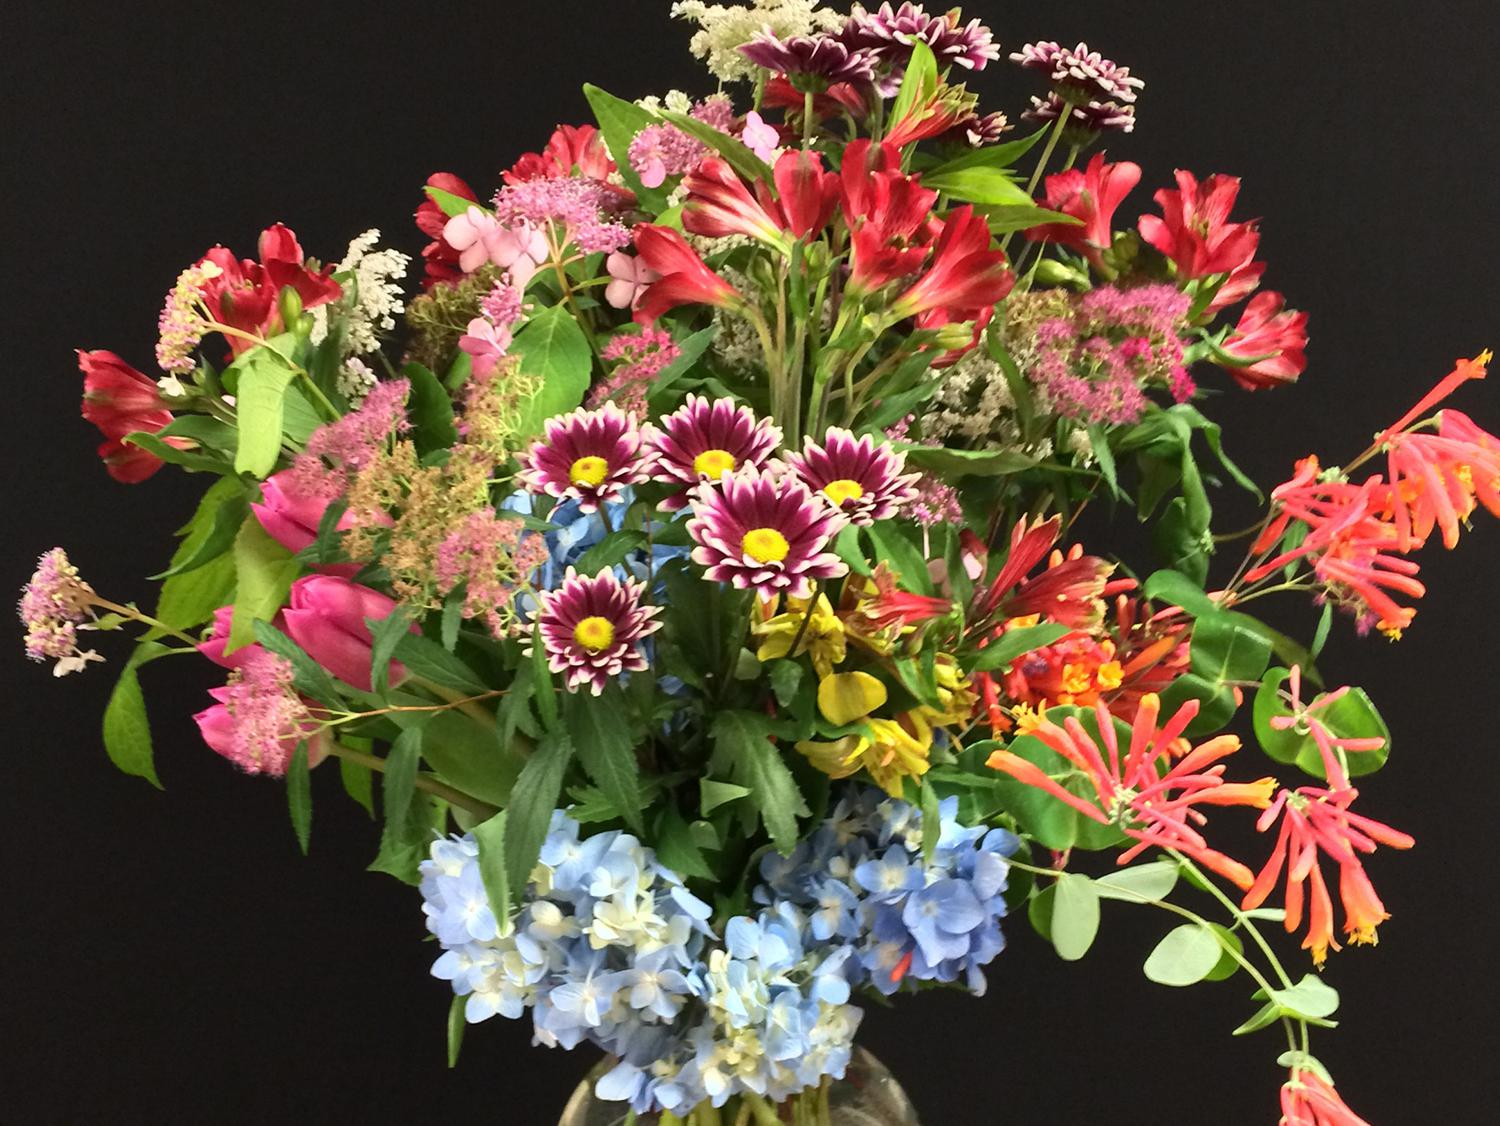 An upcoming demonstration will reveal ways to use Mississippi foliage in creative designs, such as this mixed floral arrangement. (Submitted photo)